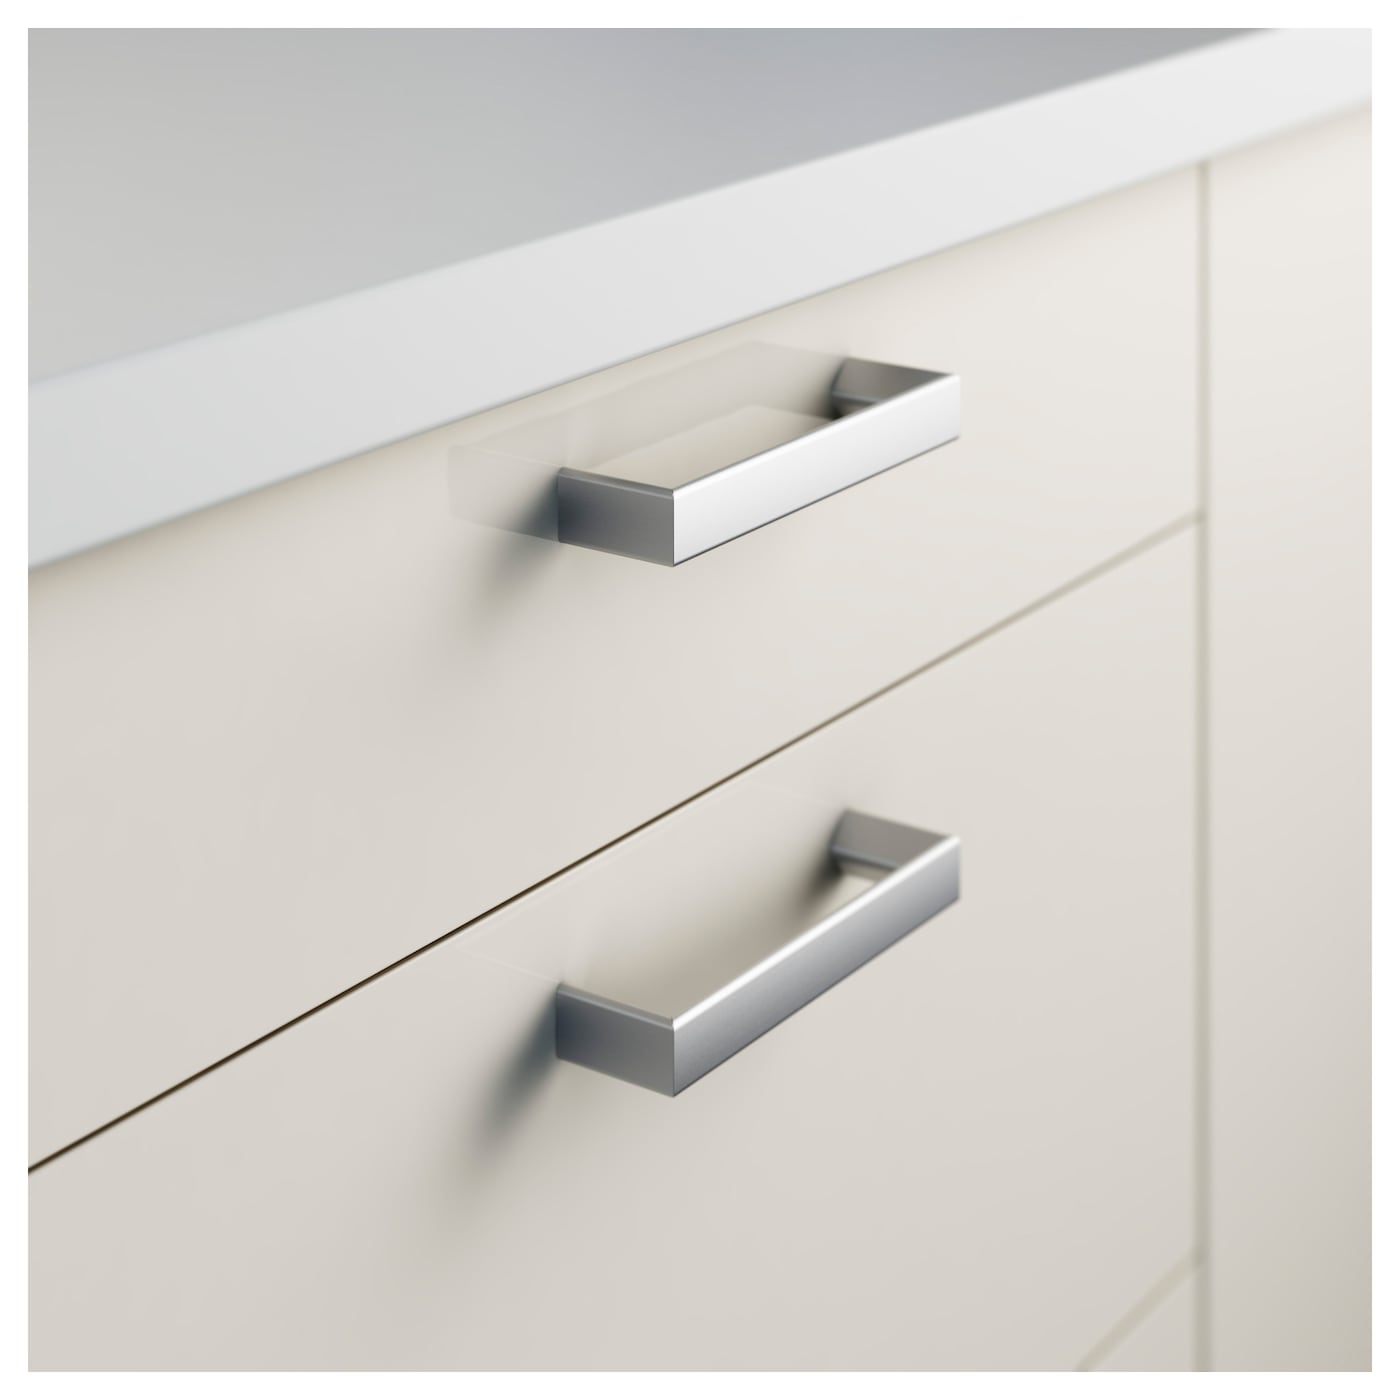 Tyda handle stainless steel 138 mm ikea - Kitchen cabinets with handles ...